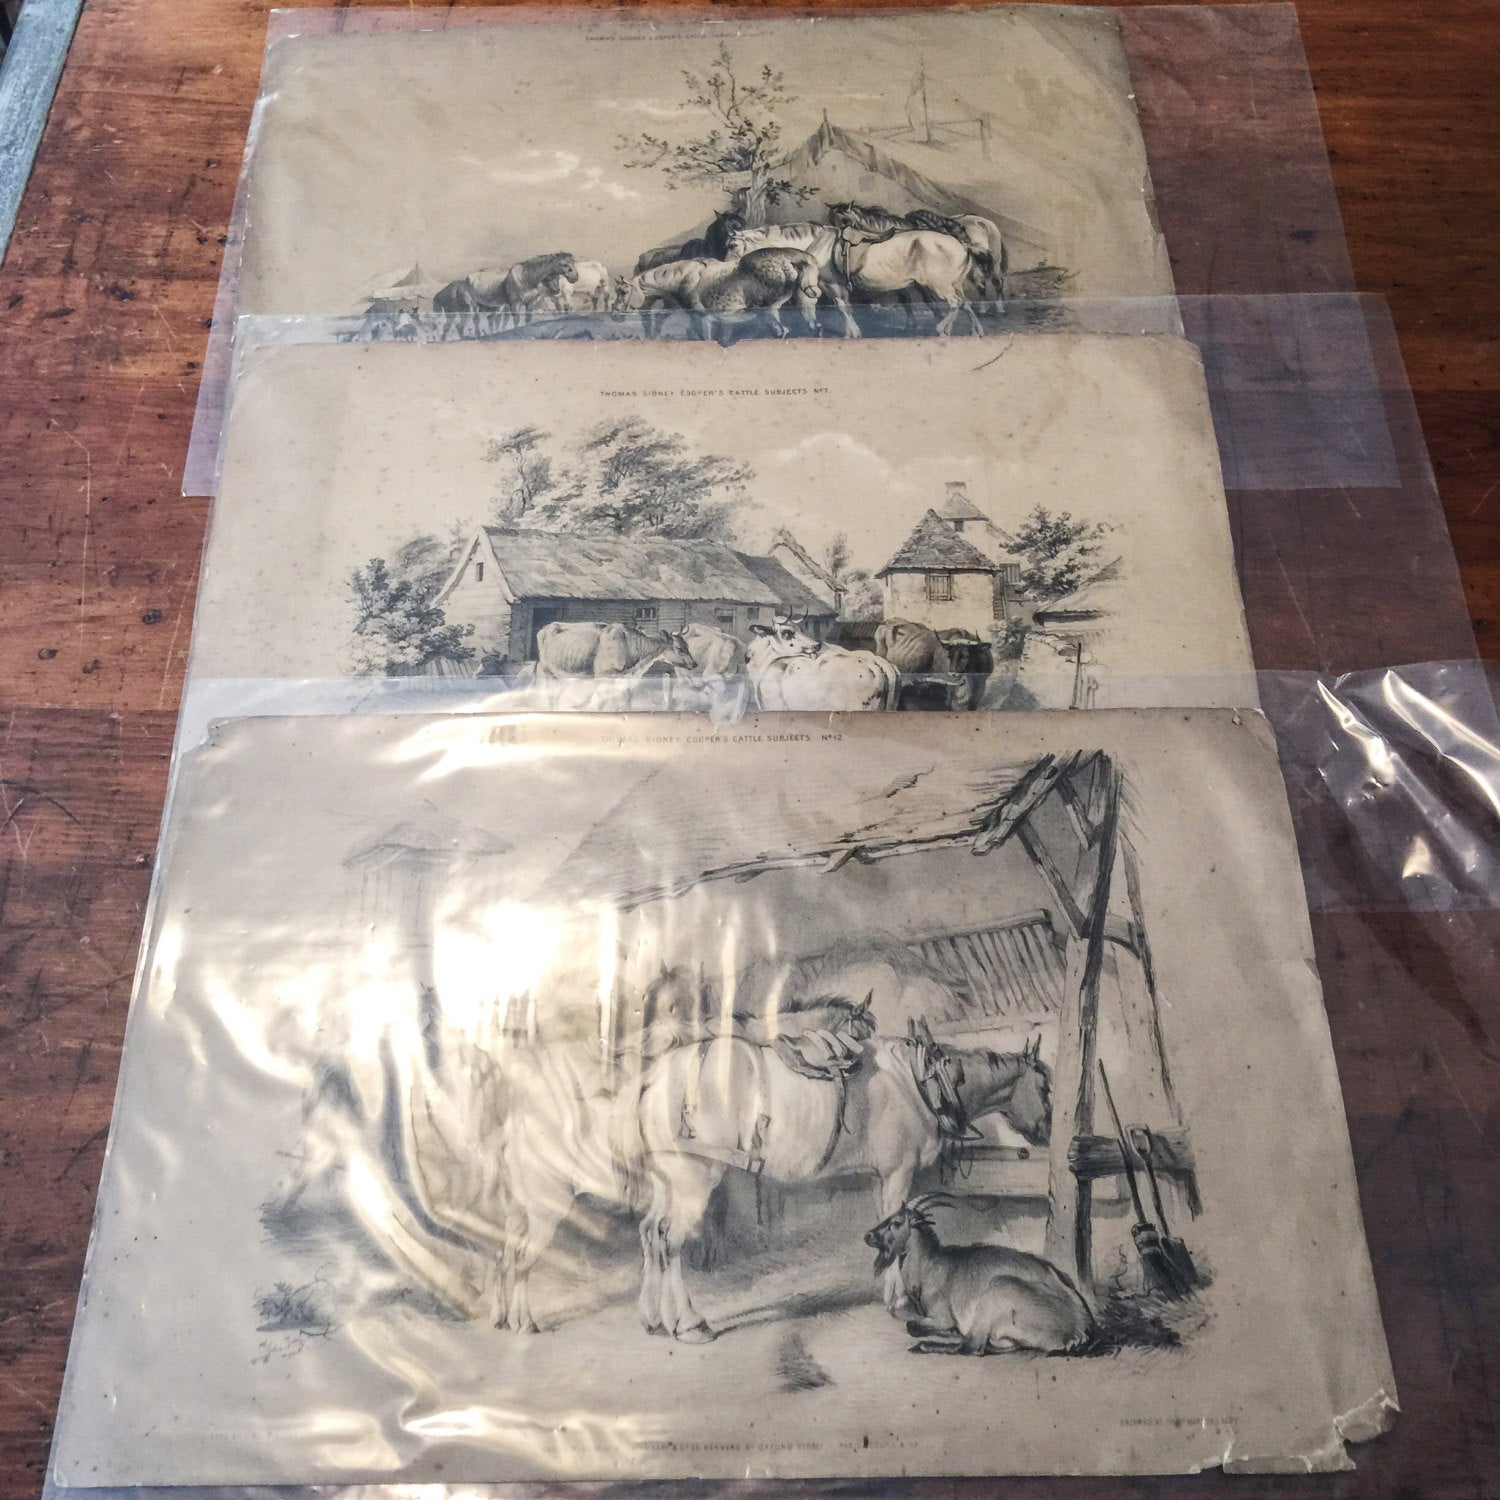 Thomas Sidney Cooper Lithographs (3) - Cattle Subjects - 1845 - J. West Giles - London - Rare - British Lithographs - British Prints